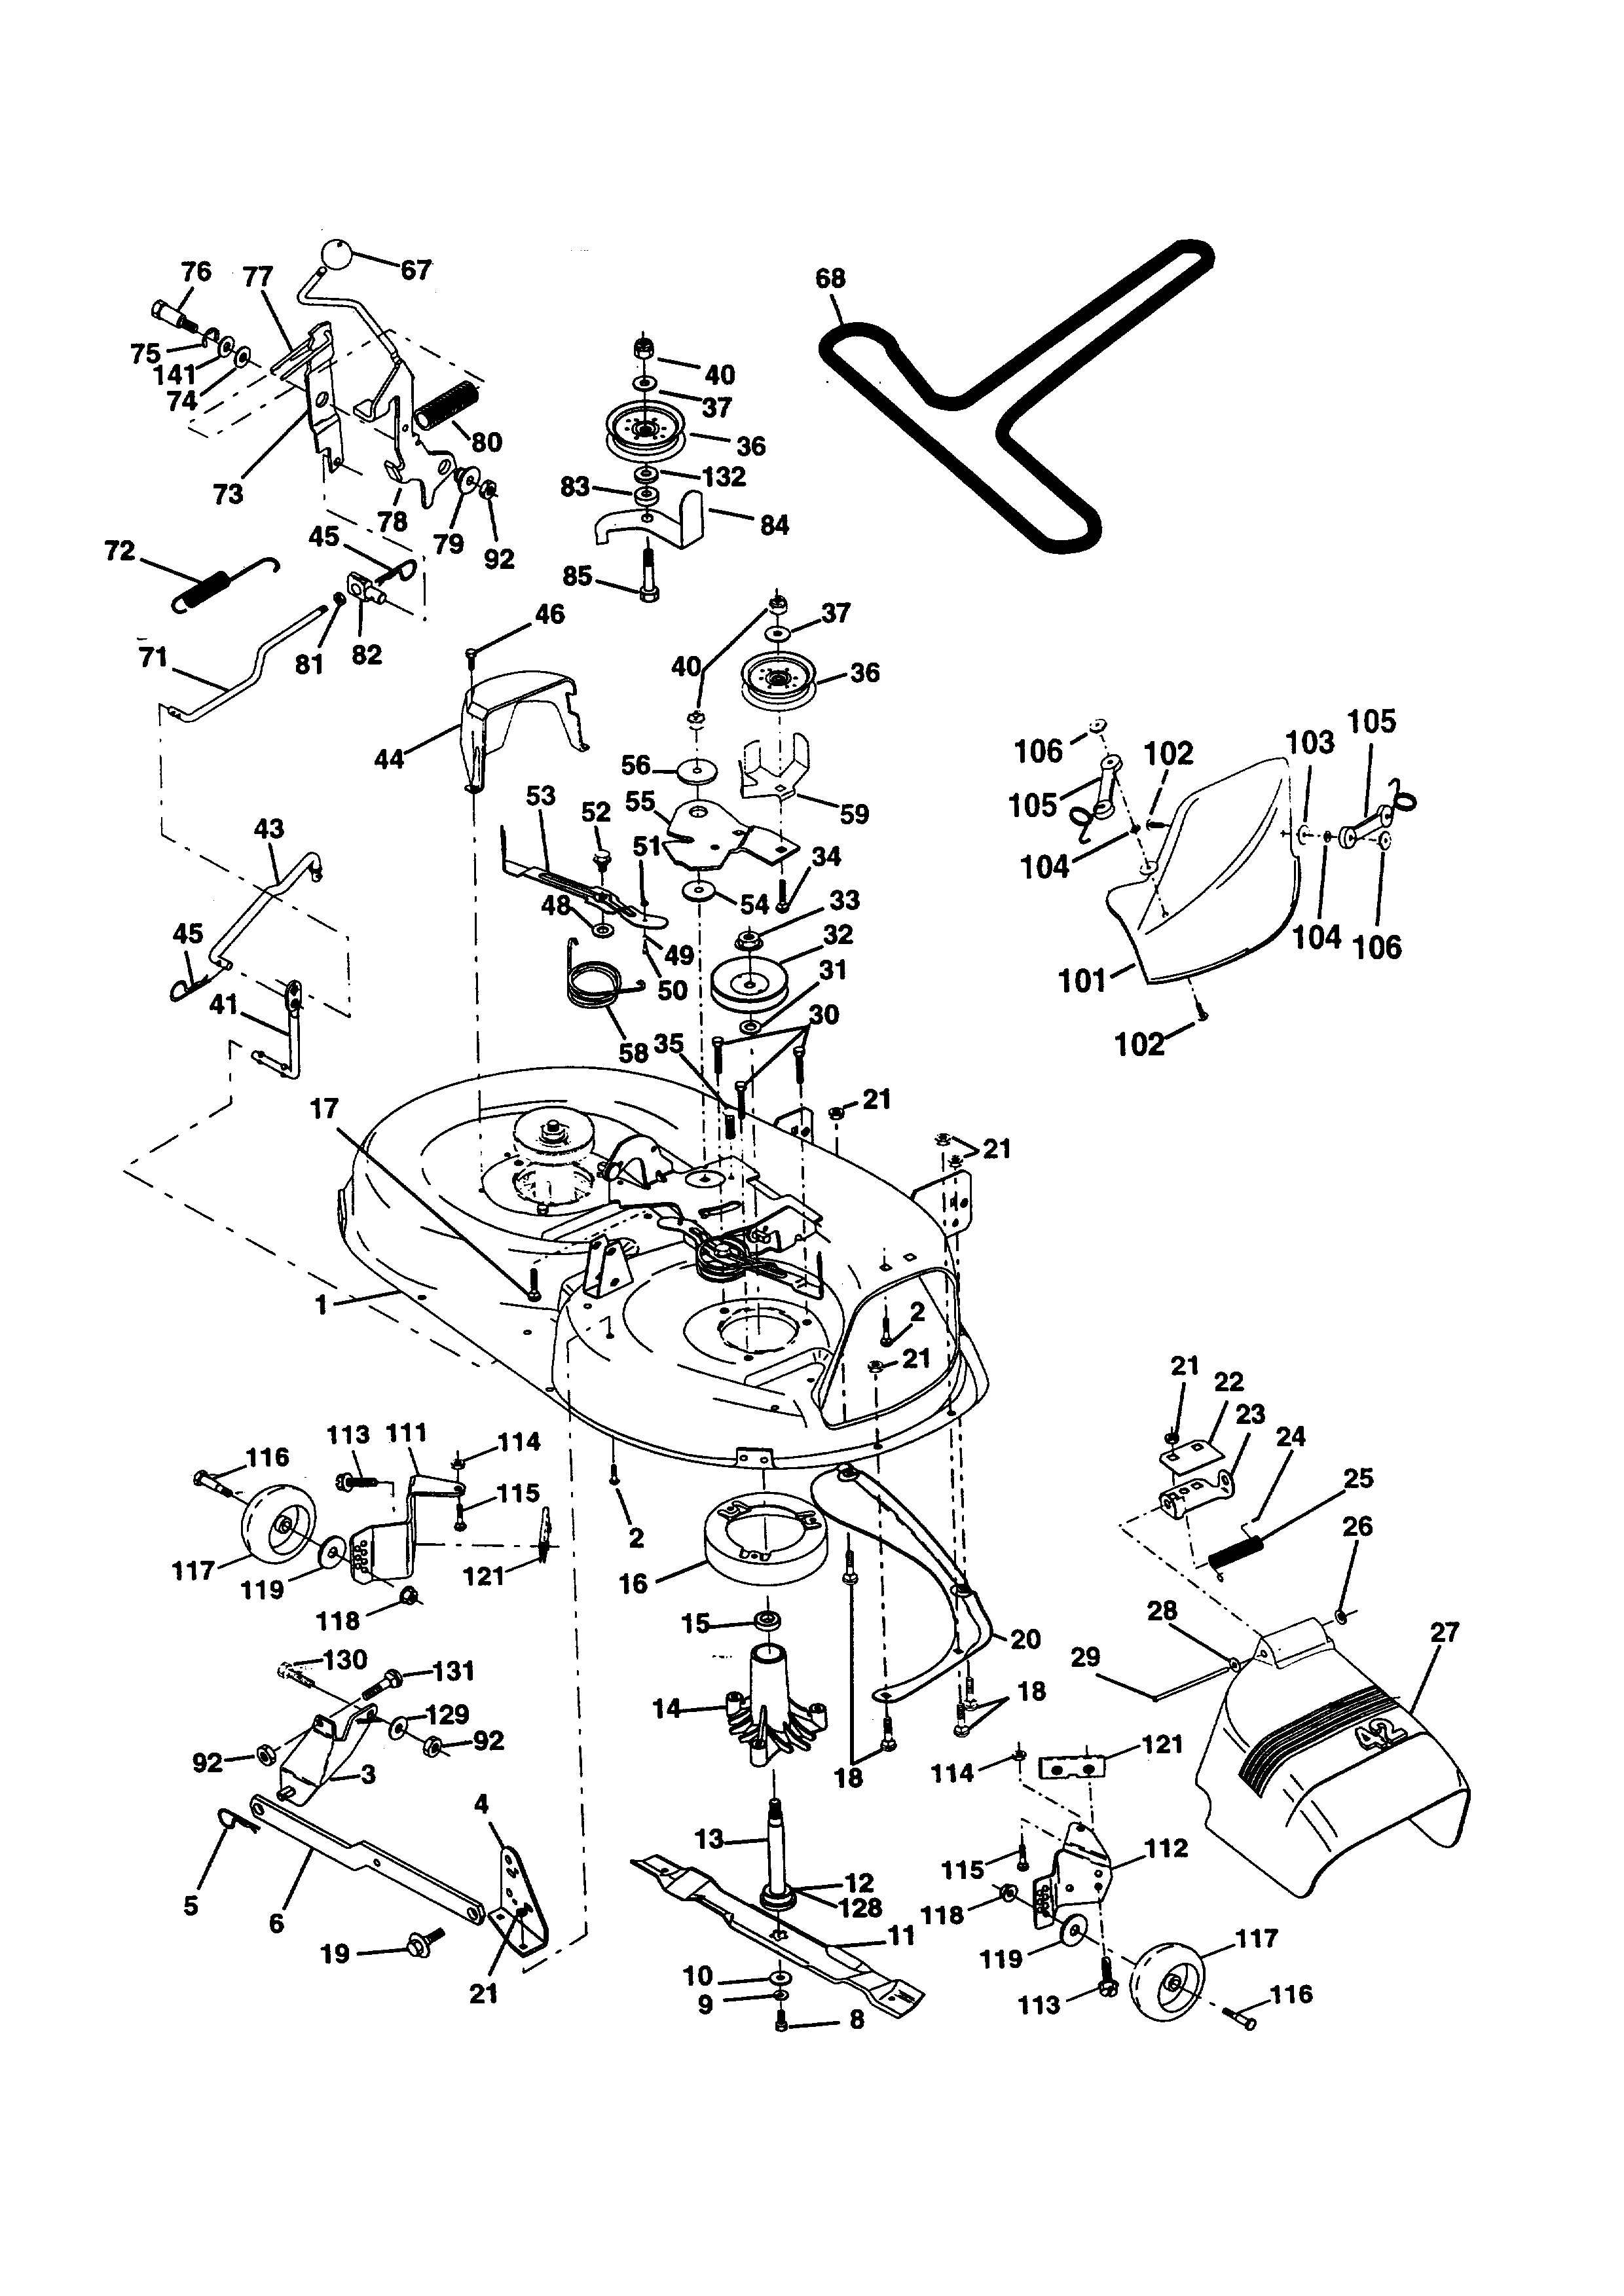 Wiring Diagram For 917 Asco Accessory 47 Printable 271021 Craftsman Lawn Mower Wire 1998 918 Tractor Parts